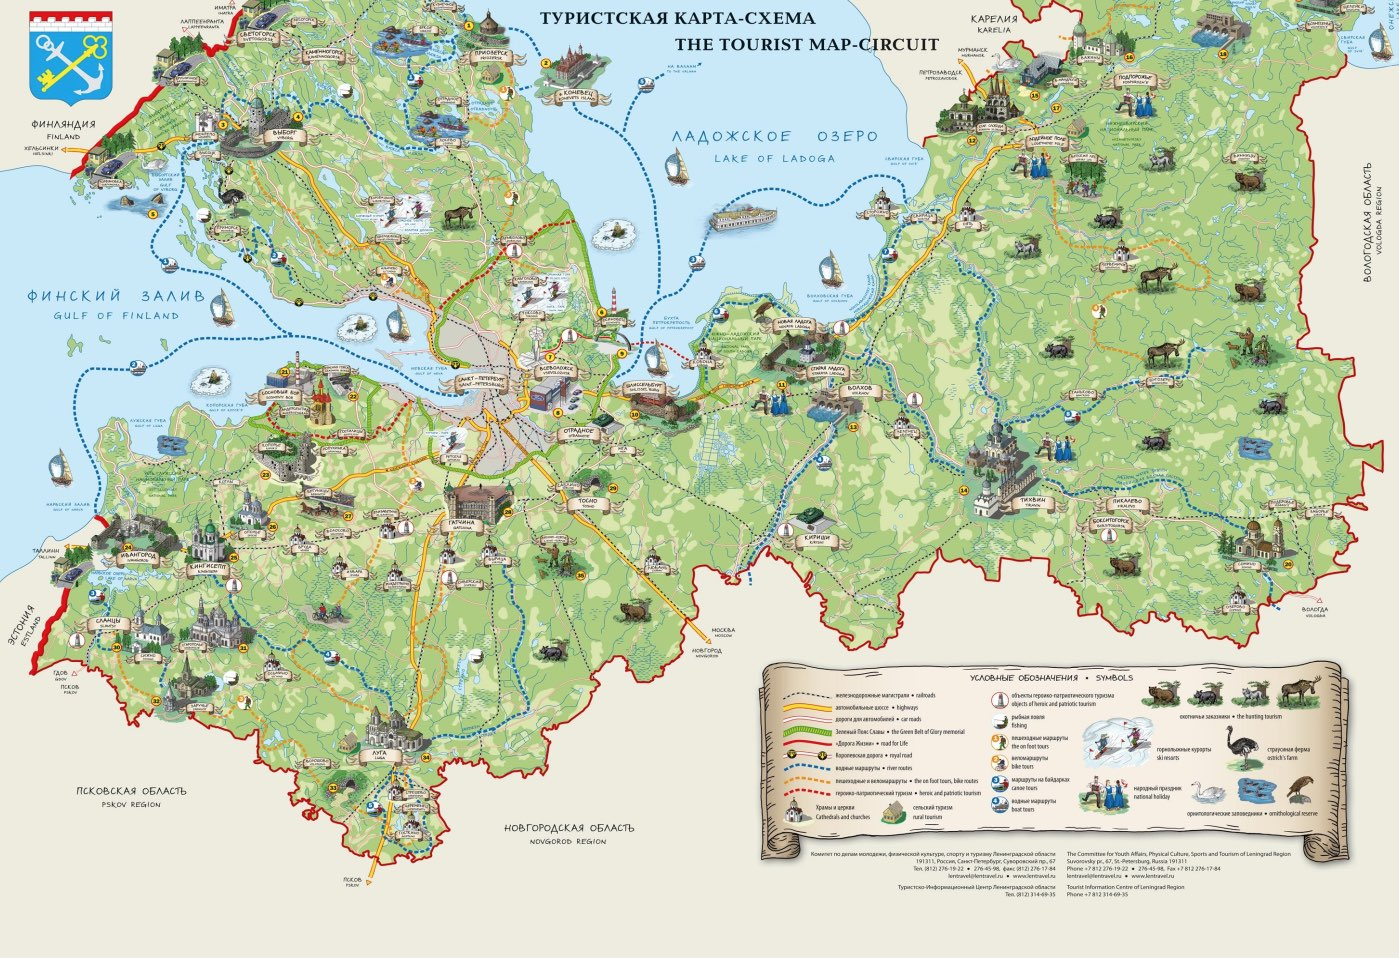 Leningrad region - tourist map - High resolution